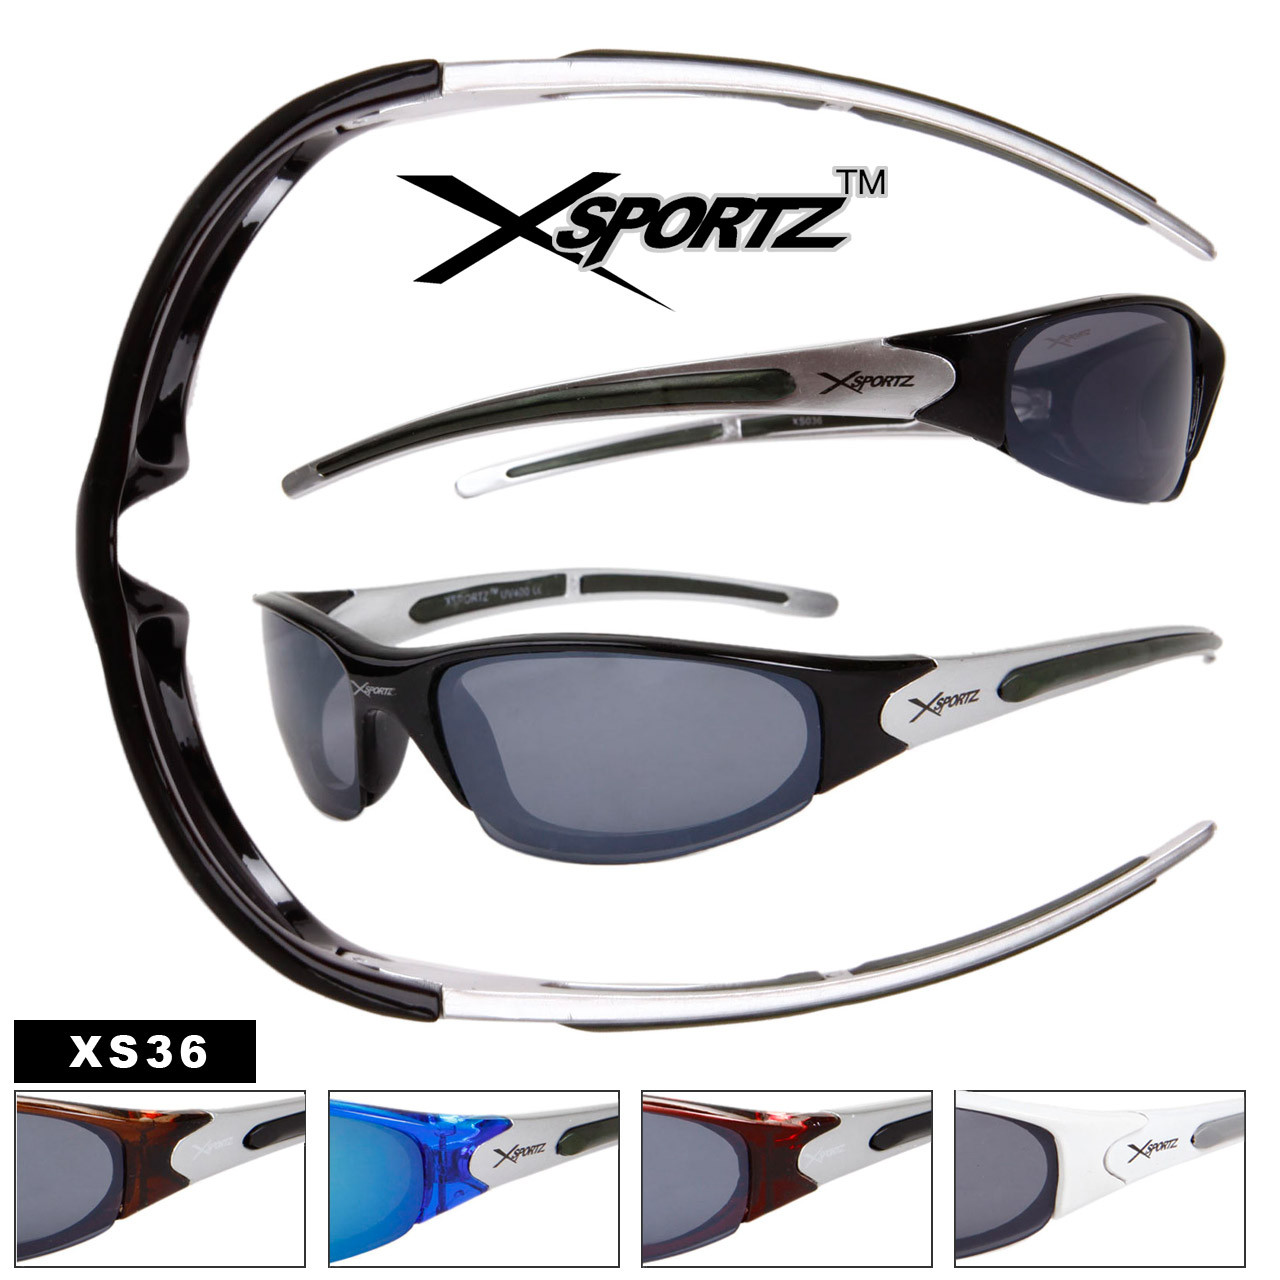 Sport Sunglasses for Men XS36